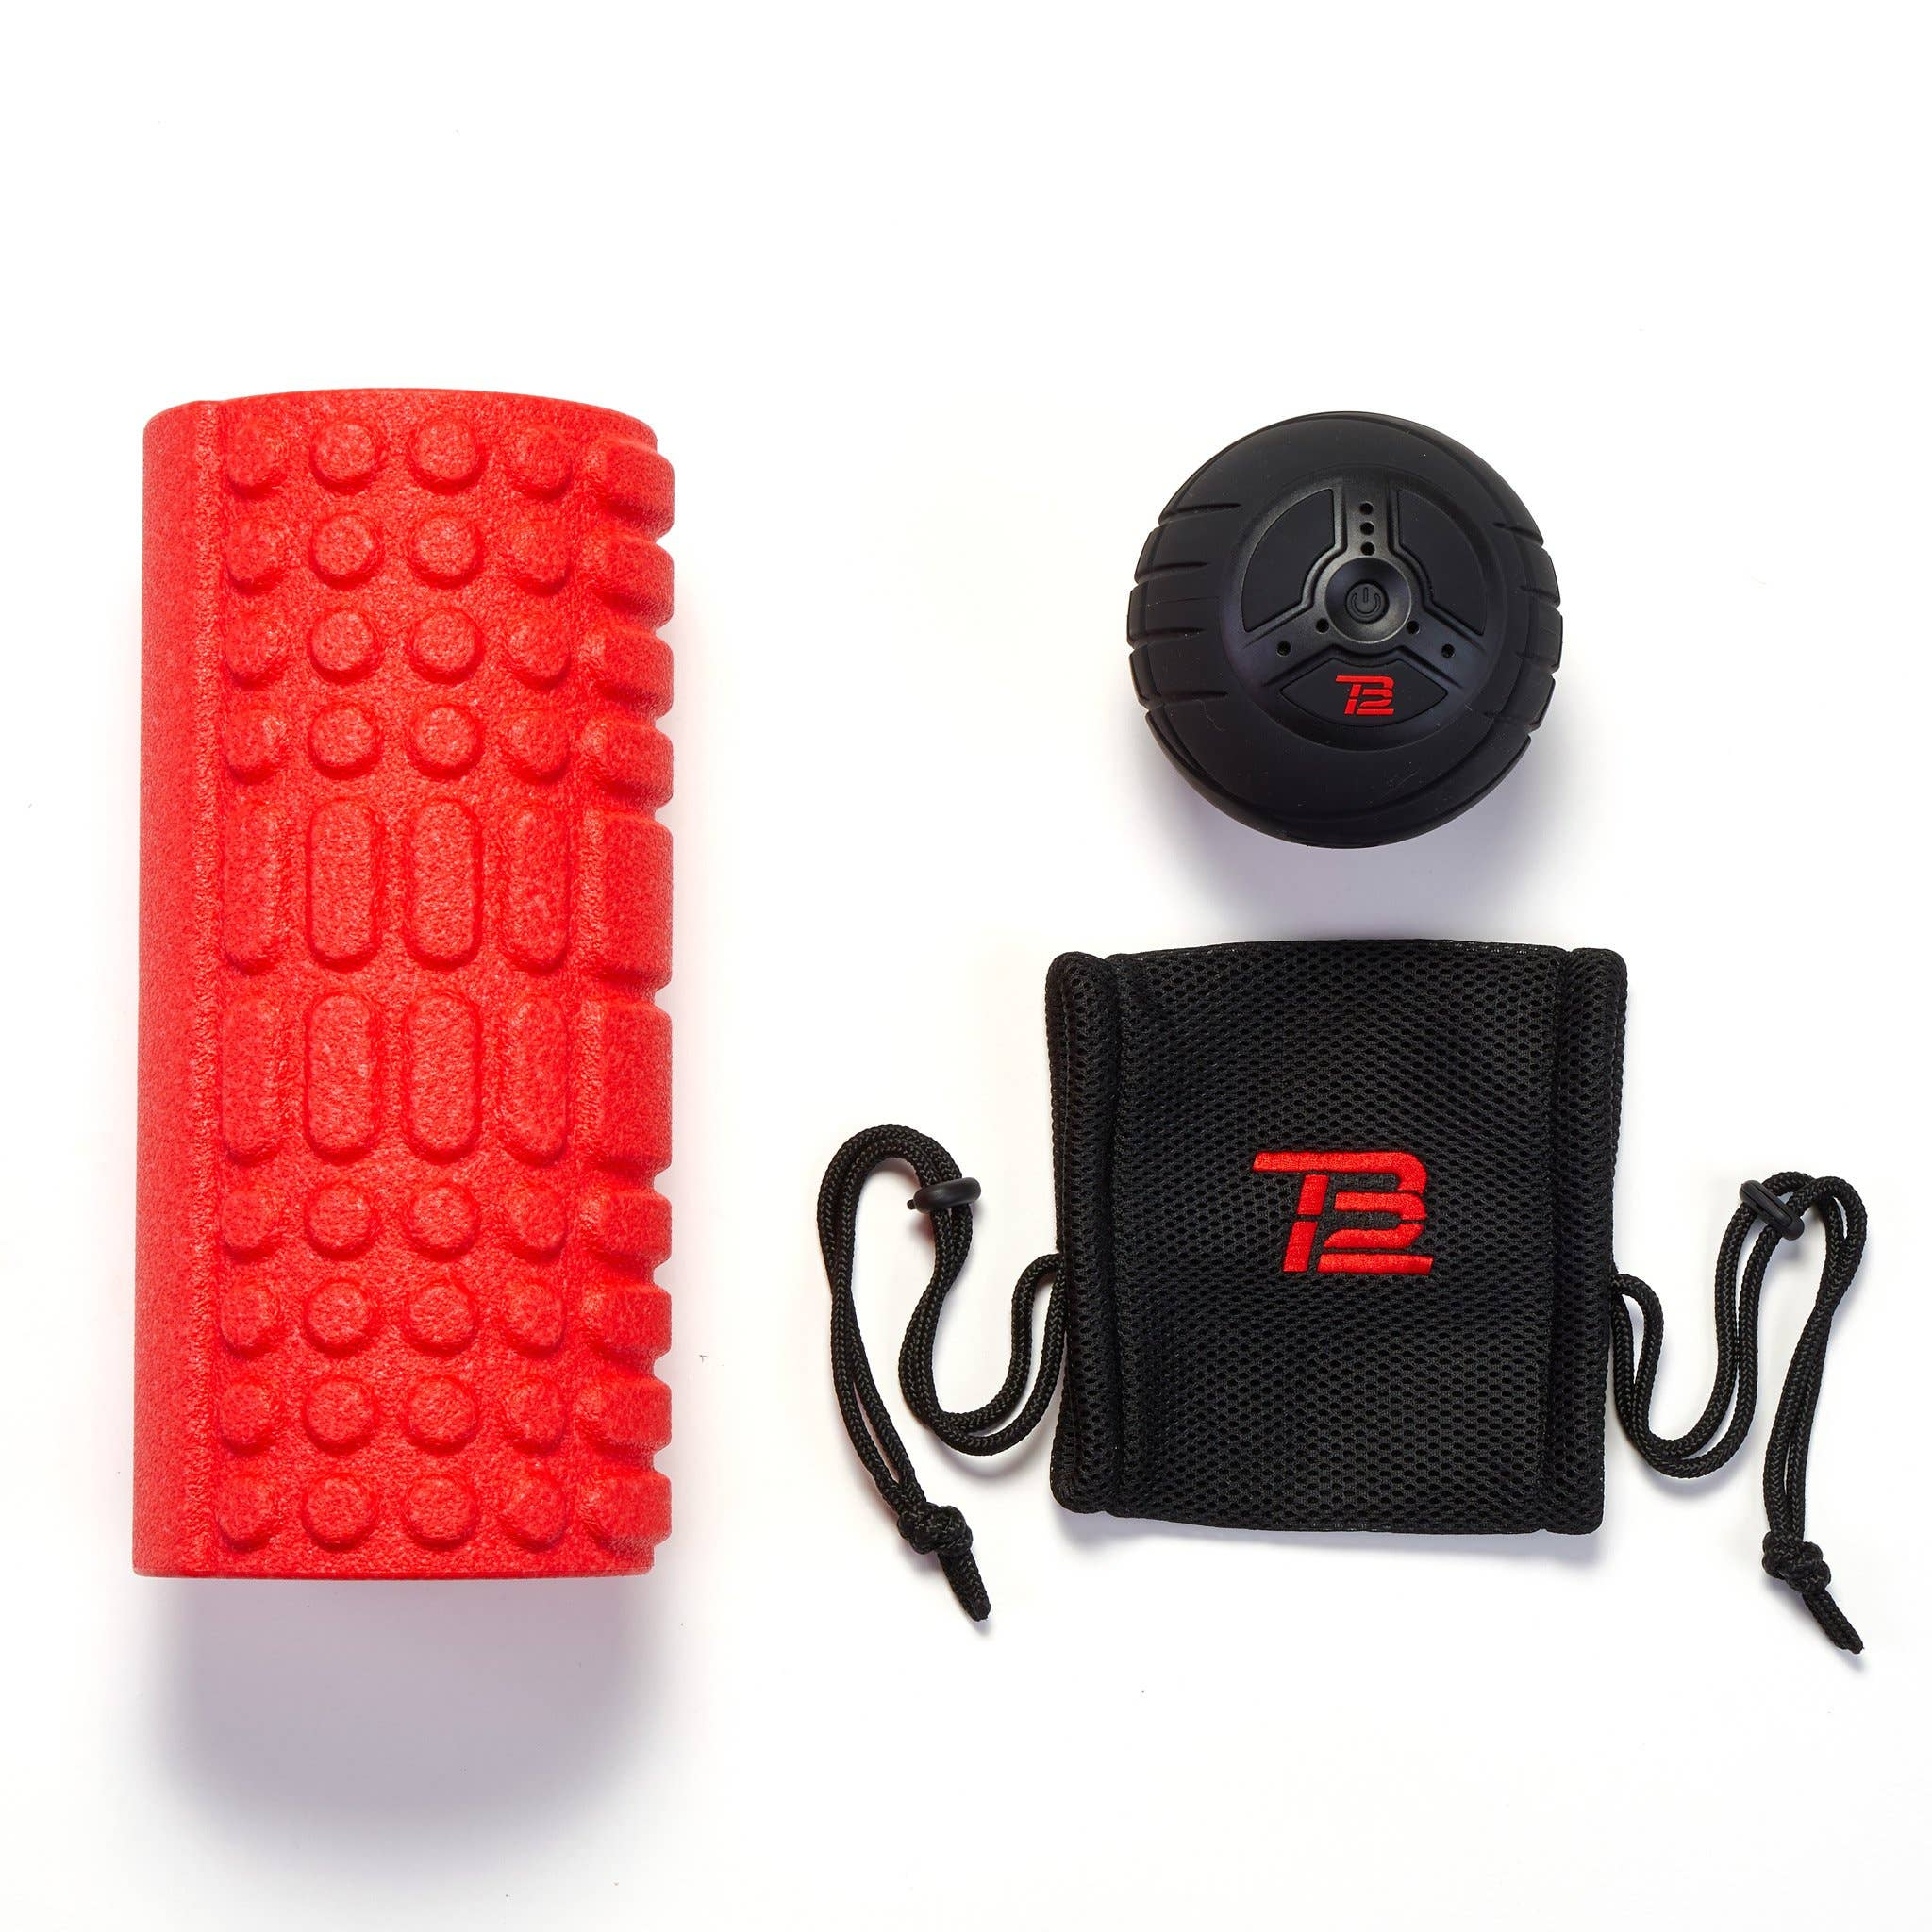 TB12™ Vibrating Pliability Roller and Sphere Bundle